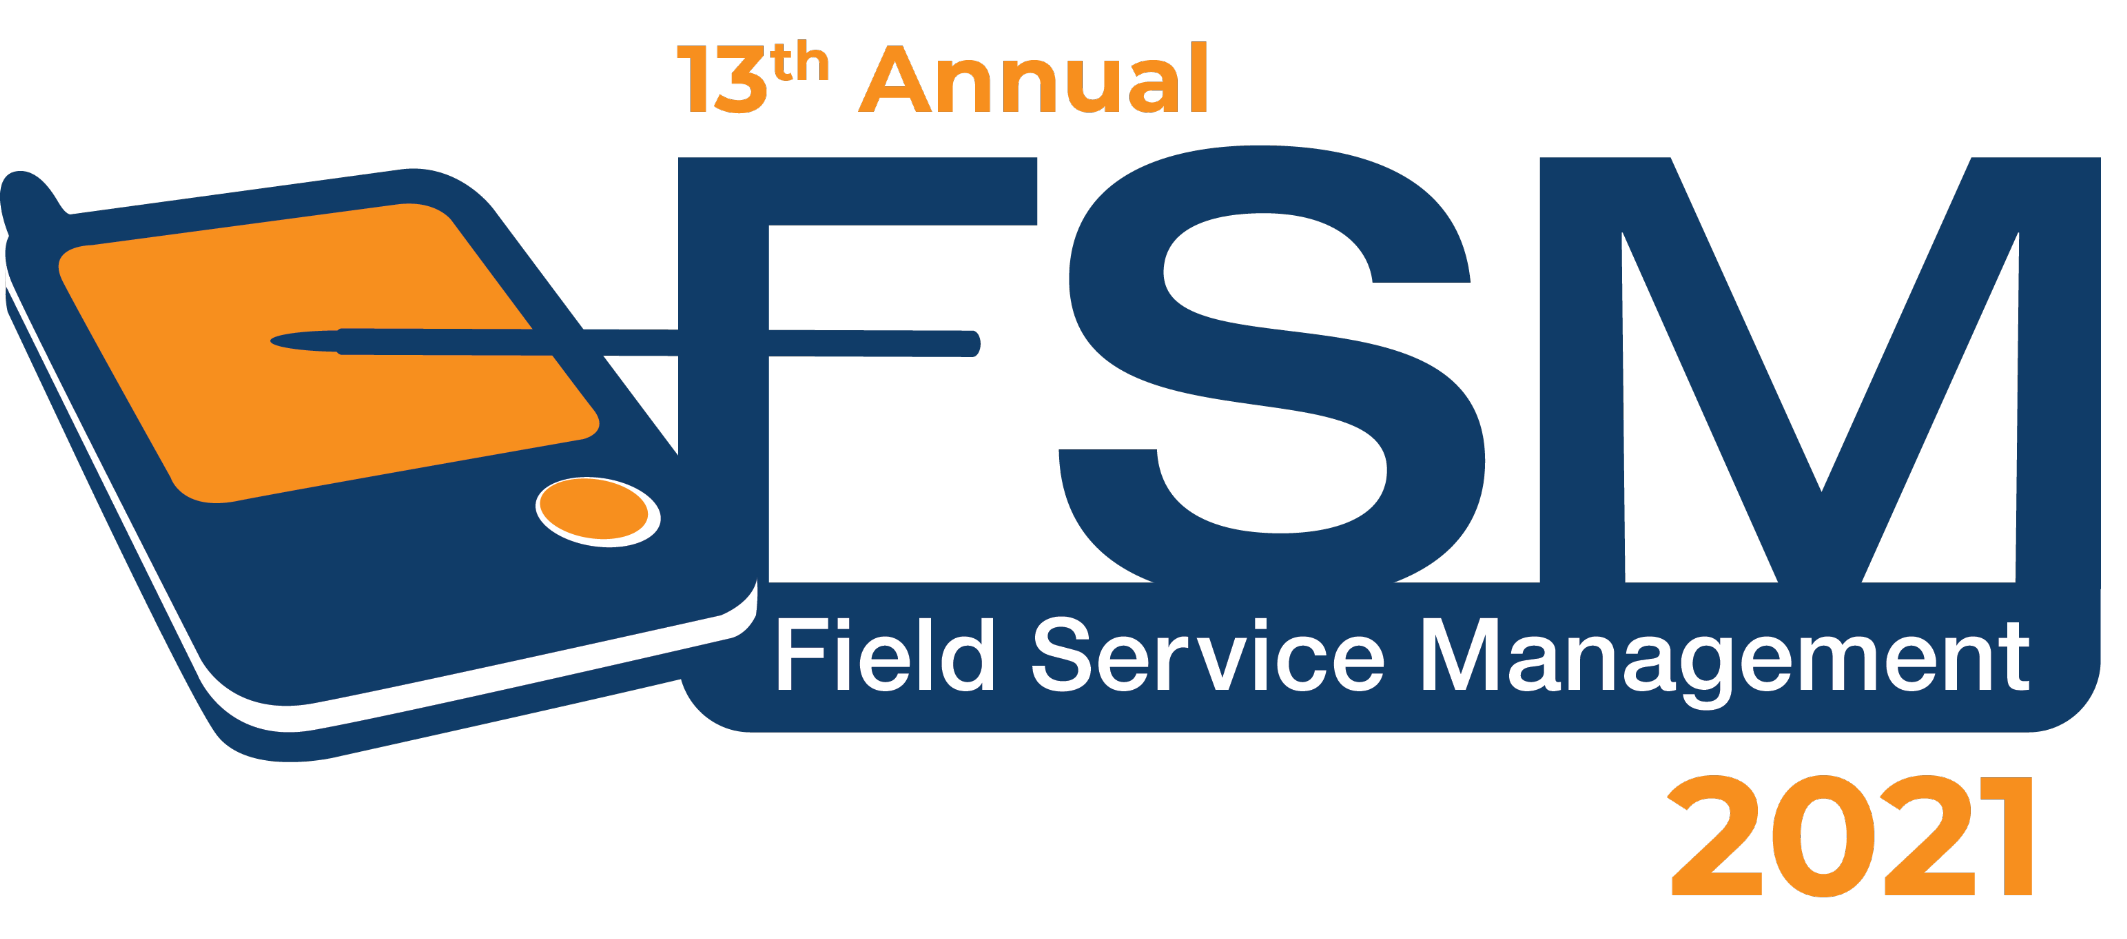 13th Annual Field Service Management 2021